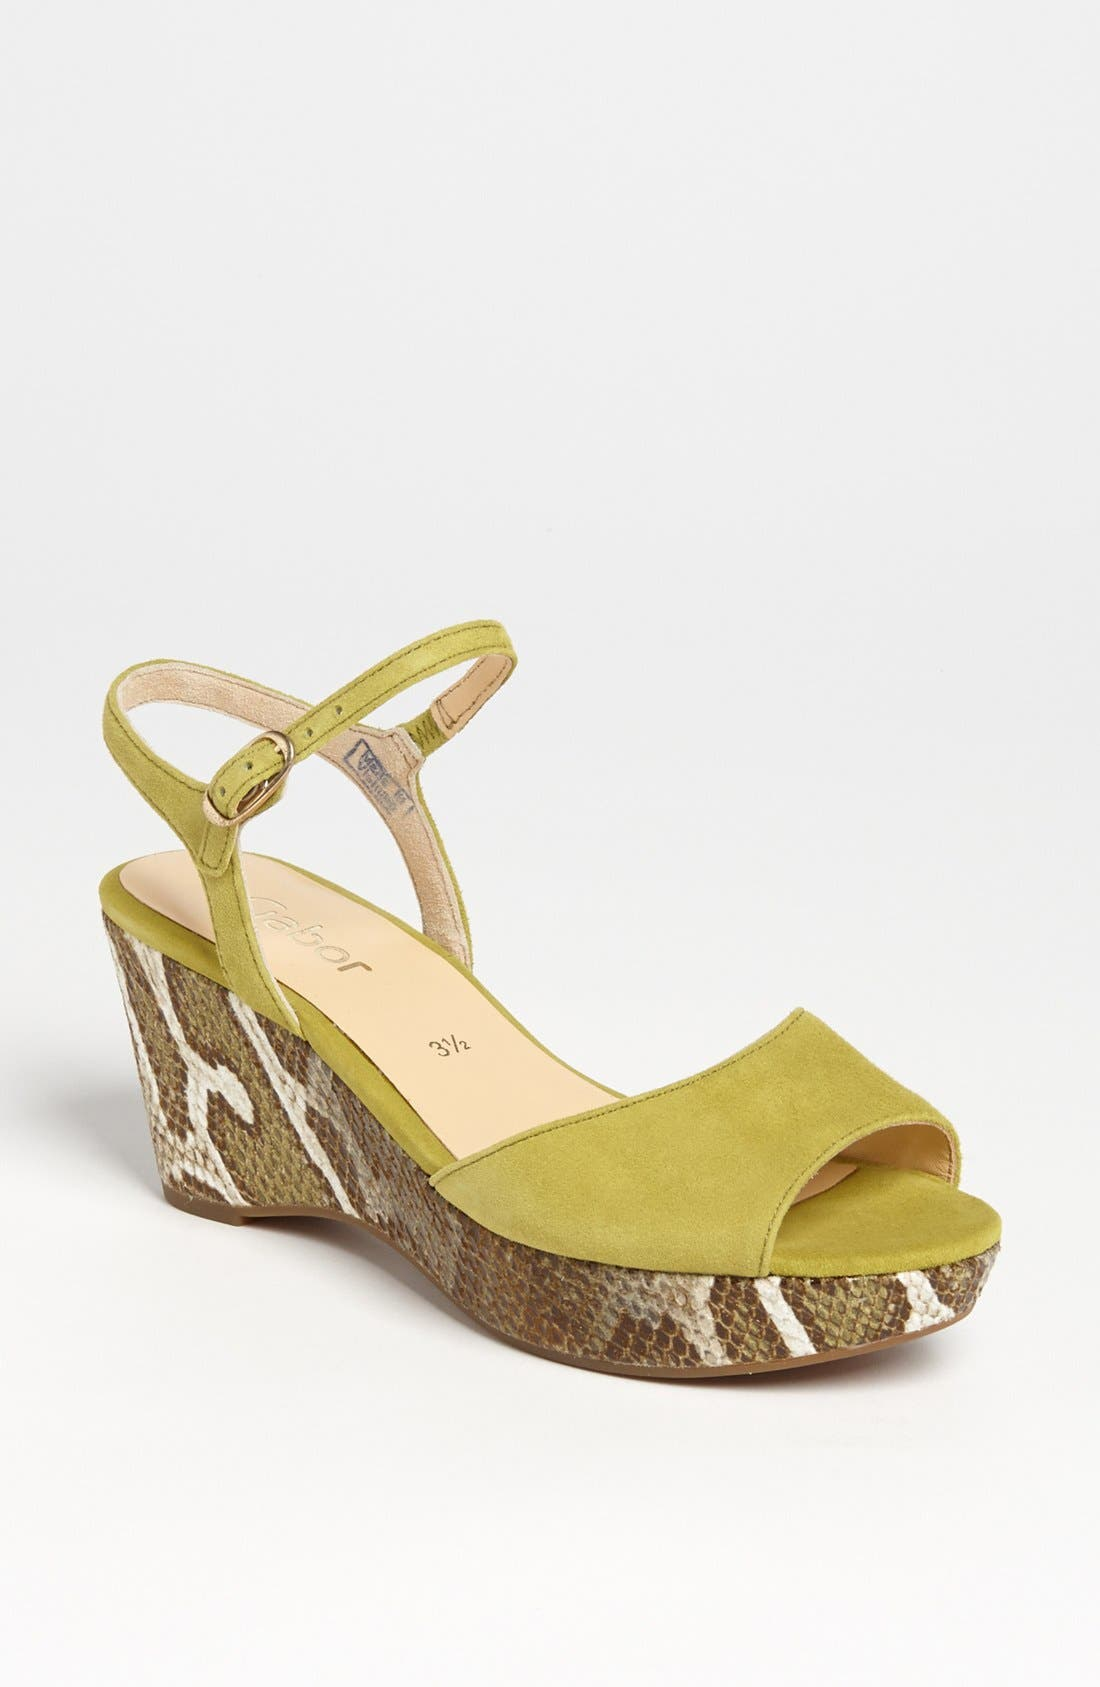 Alternate Image 1 Selected - Gabor Wedge Sandal (Online Only)